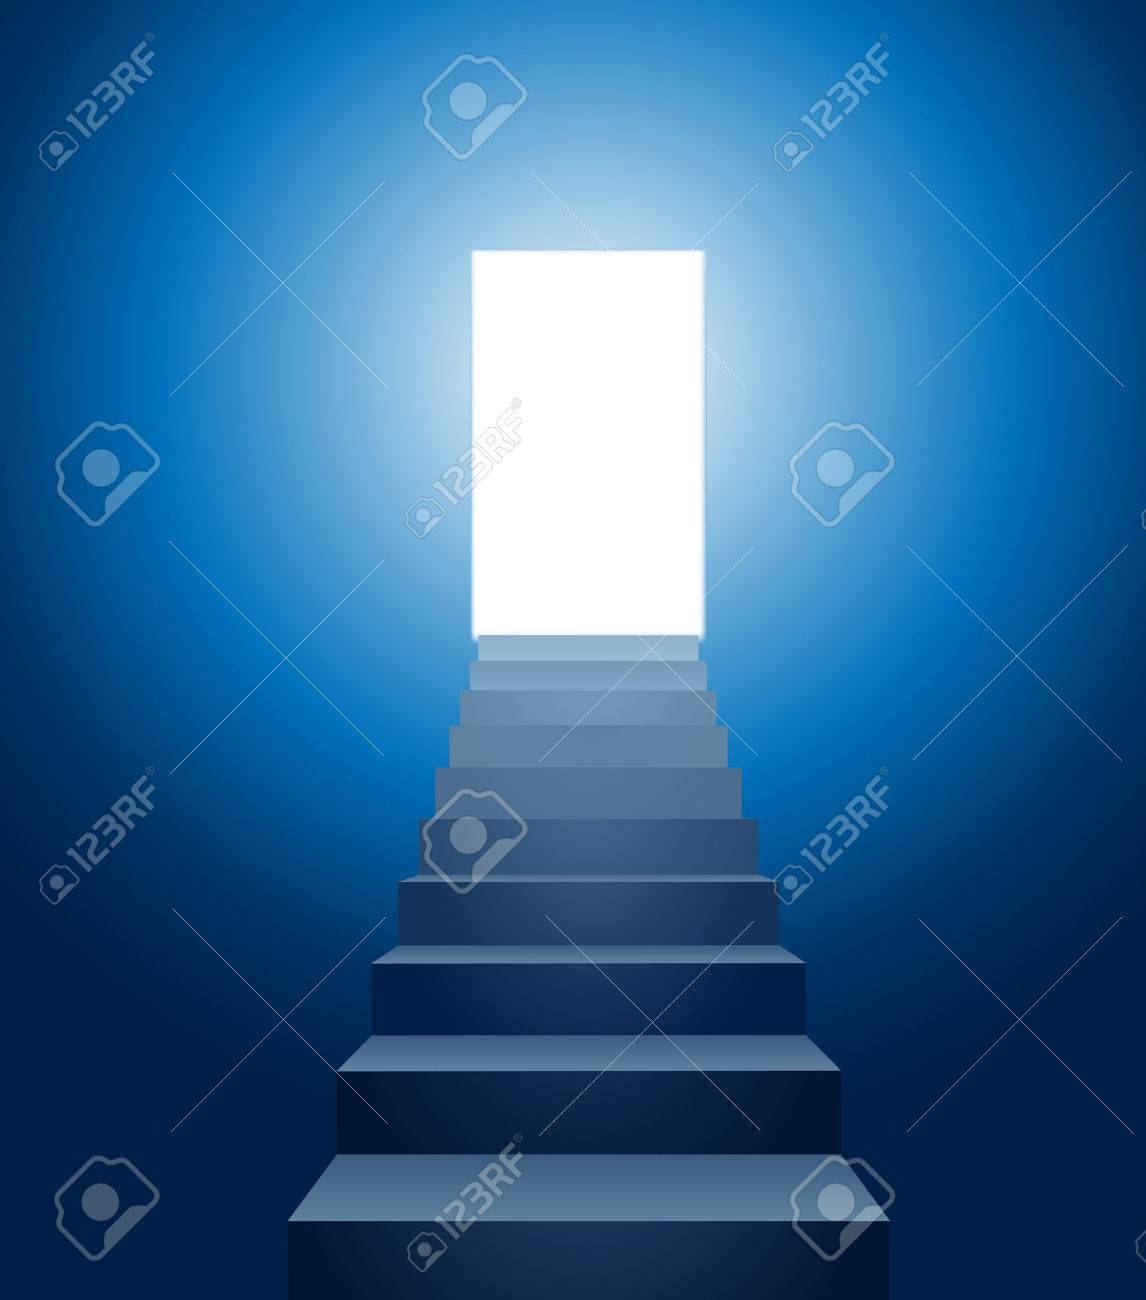 Vector Conceptual Illustration Of Stairways Leading Into The Light Stock  Vector   8949643